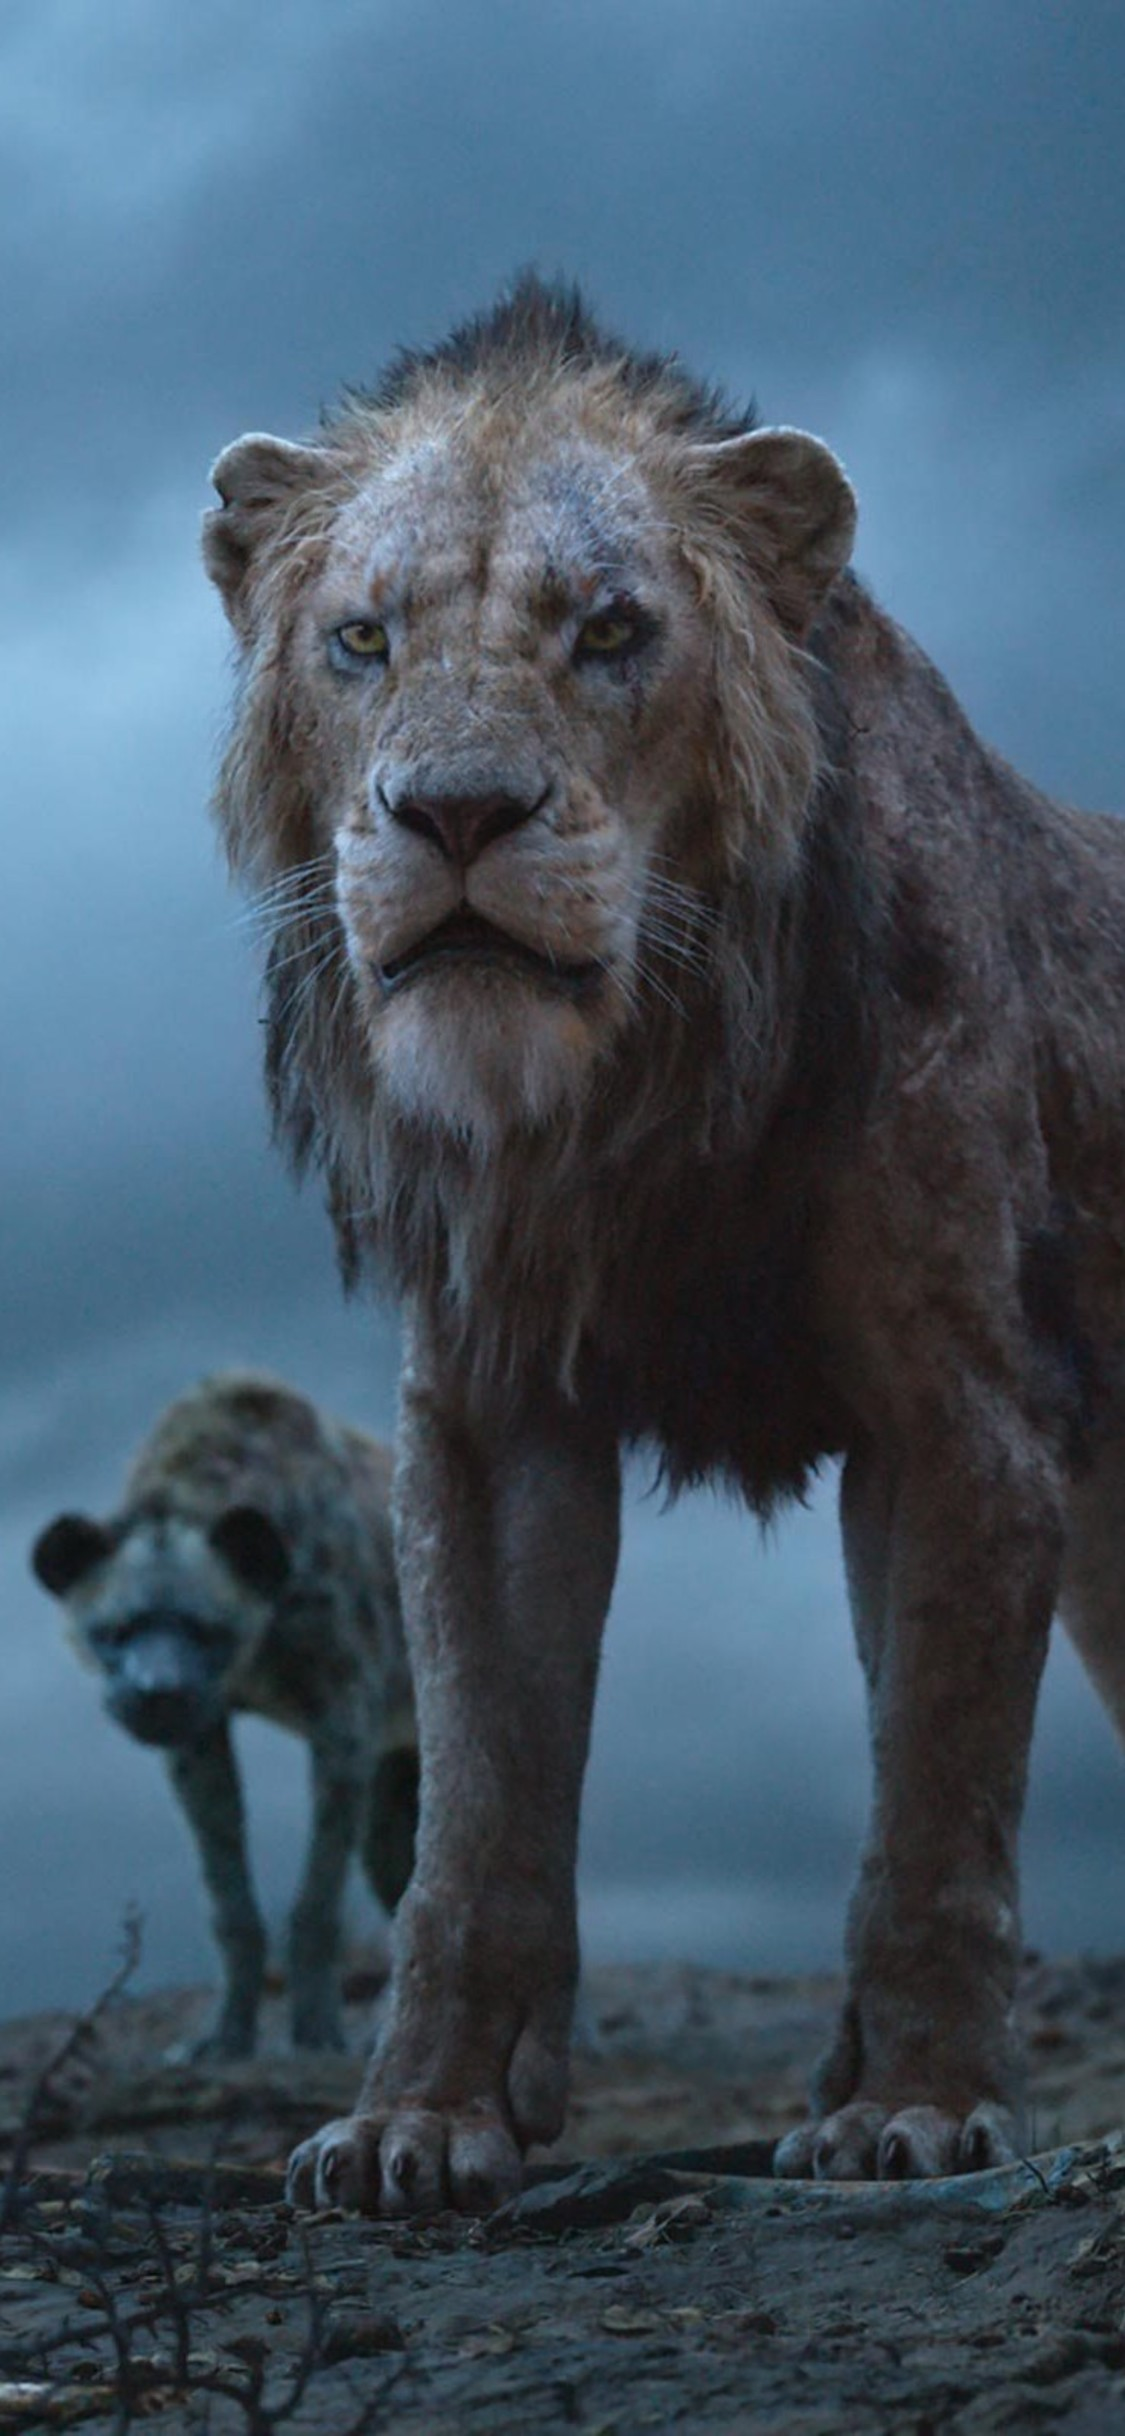 The Lion King 2019 Wallpapers High Quality Download Free